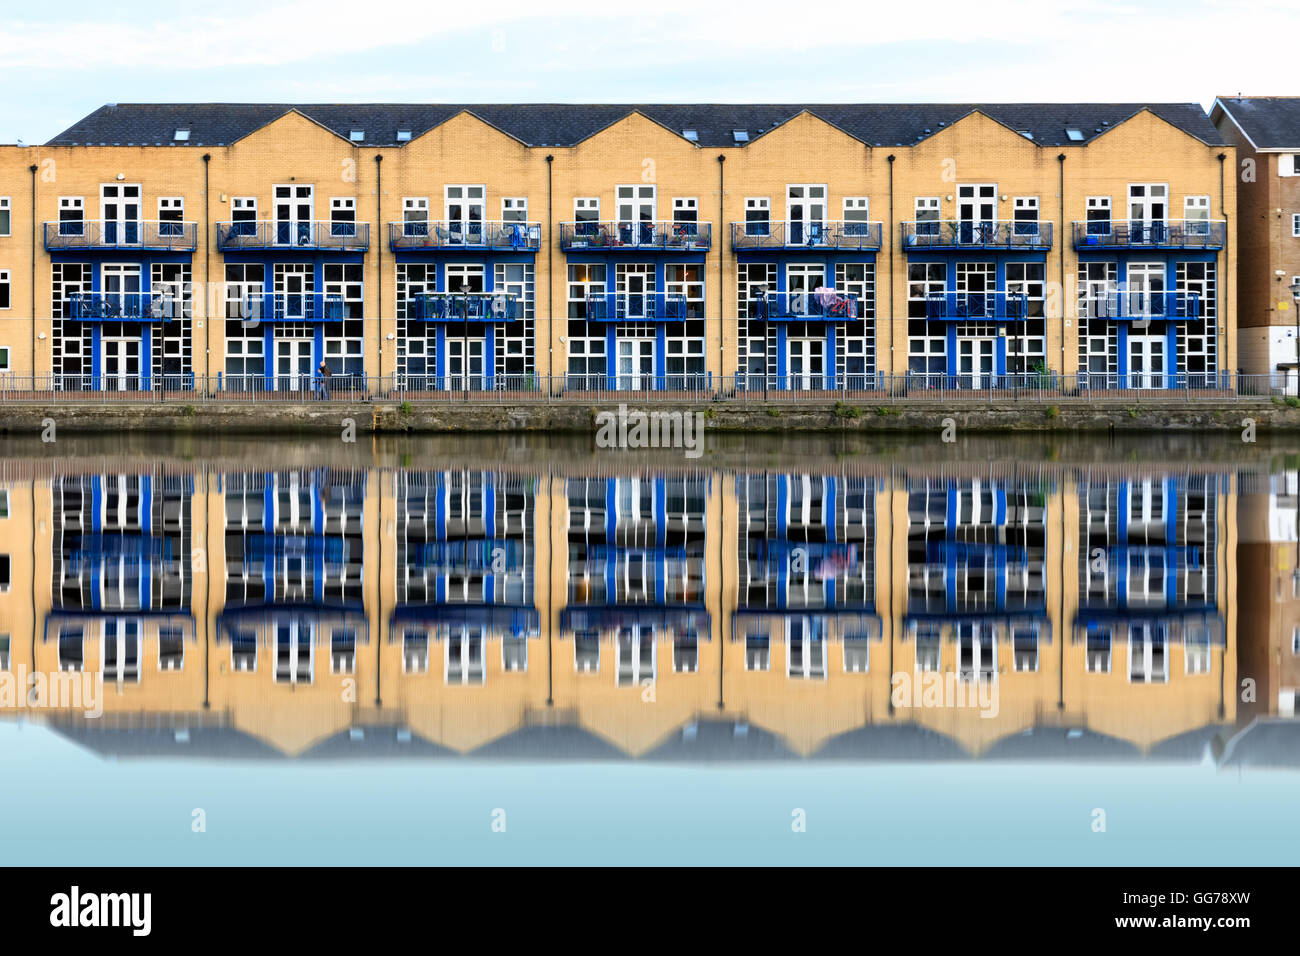 Terraced houses along Millwall Outer Dock in London, UK - Stock Image